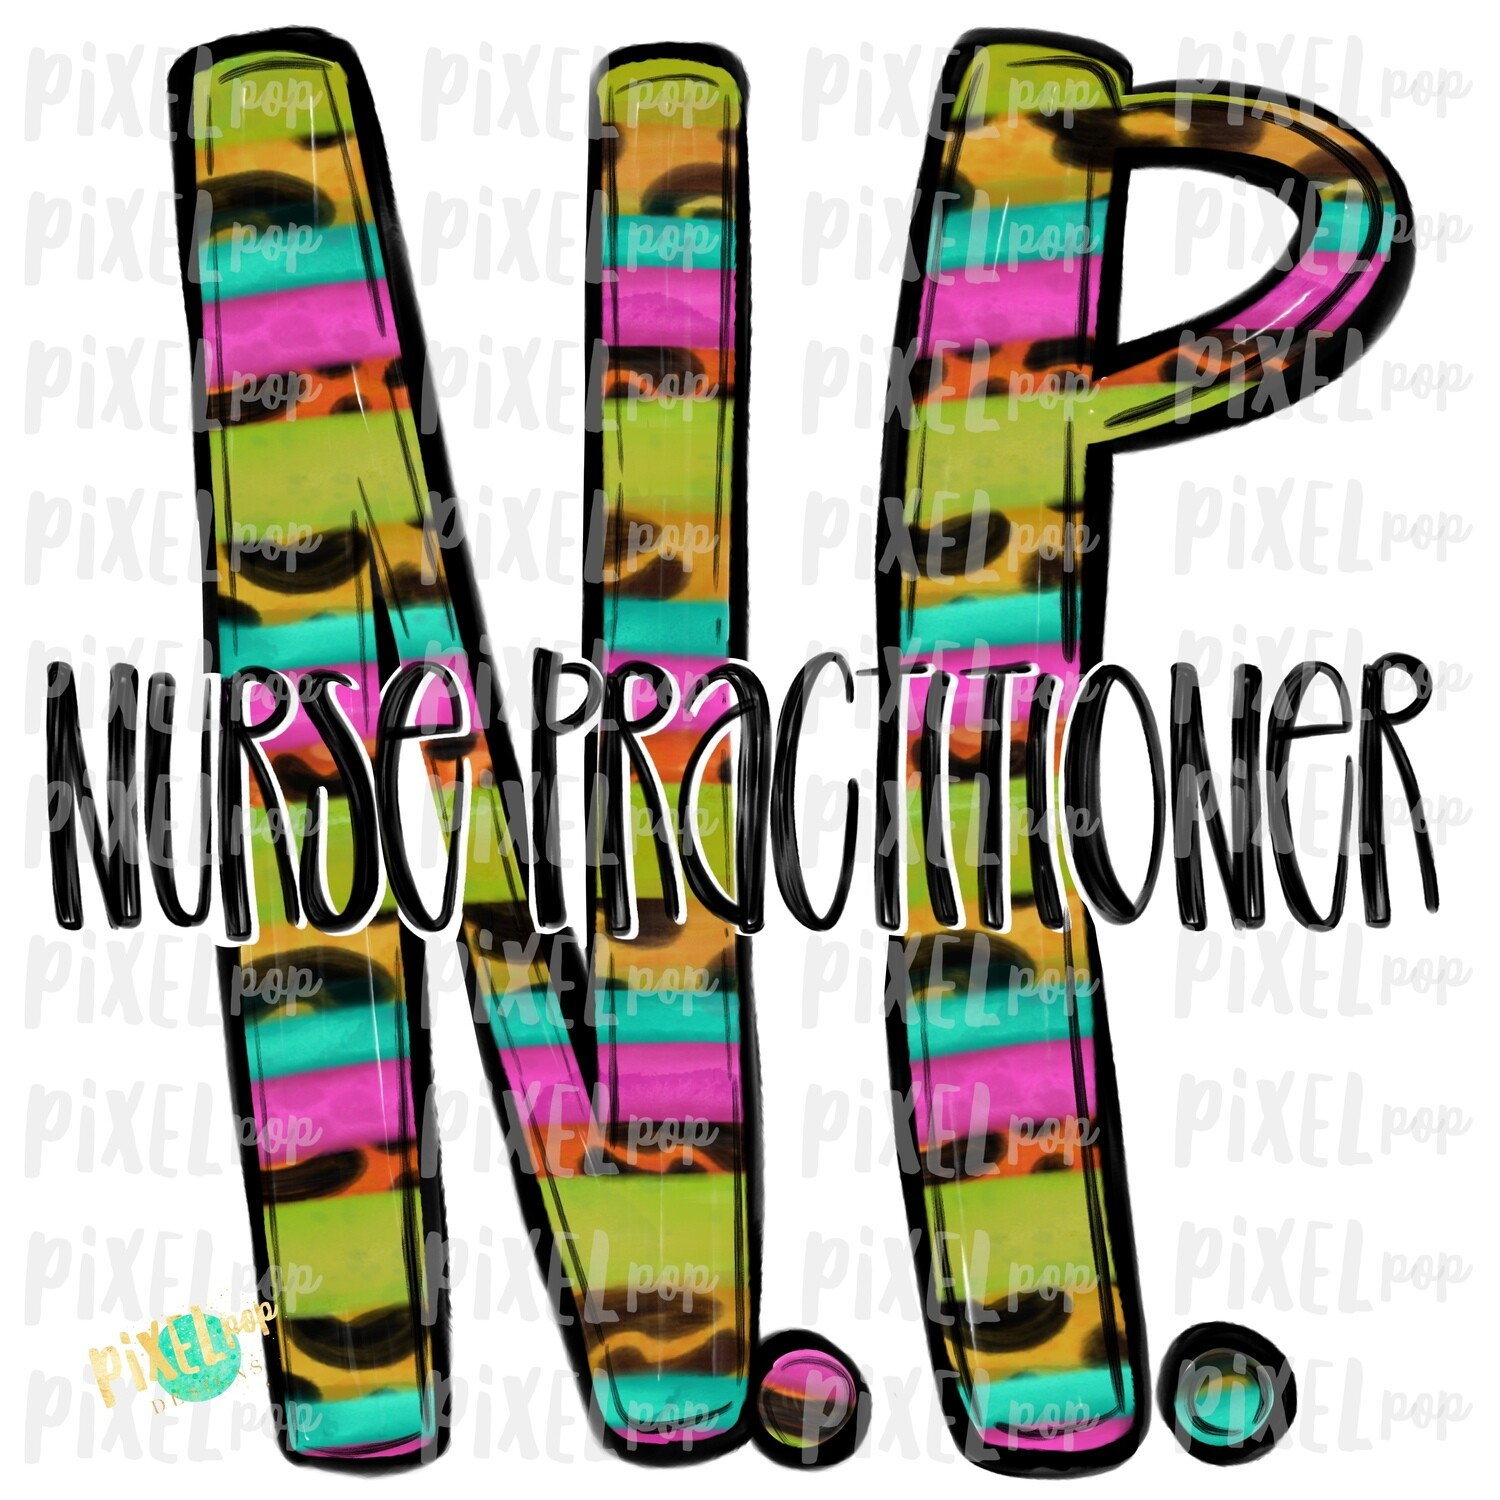 Nurse Practitioner NP Bright Sublimation Design | Sublimation | Hand Drawn Art | Nursing PNG | Medical Art | Digital Download | Art Clipart